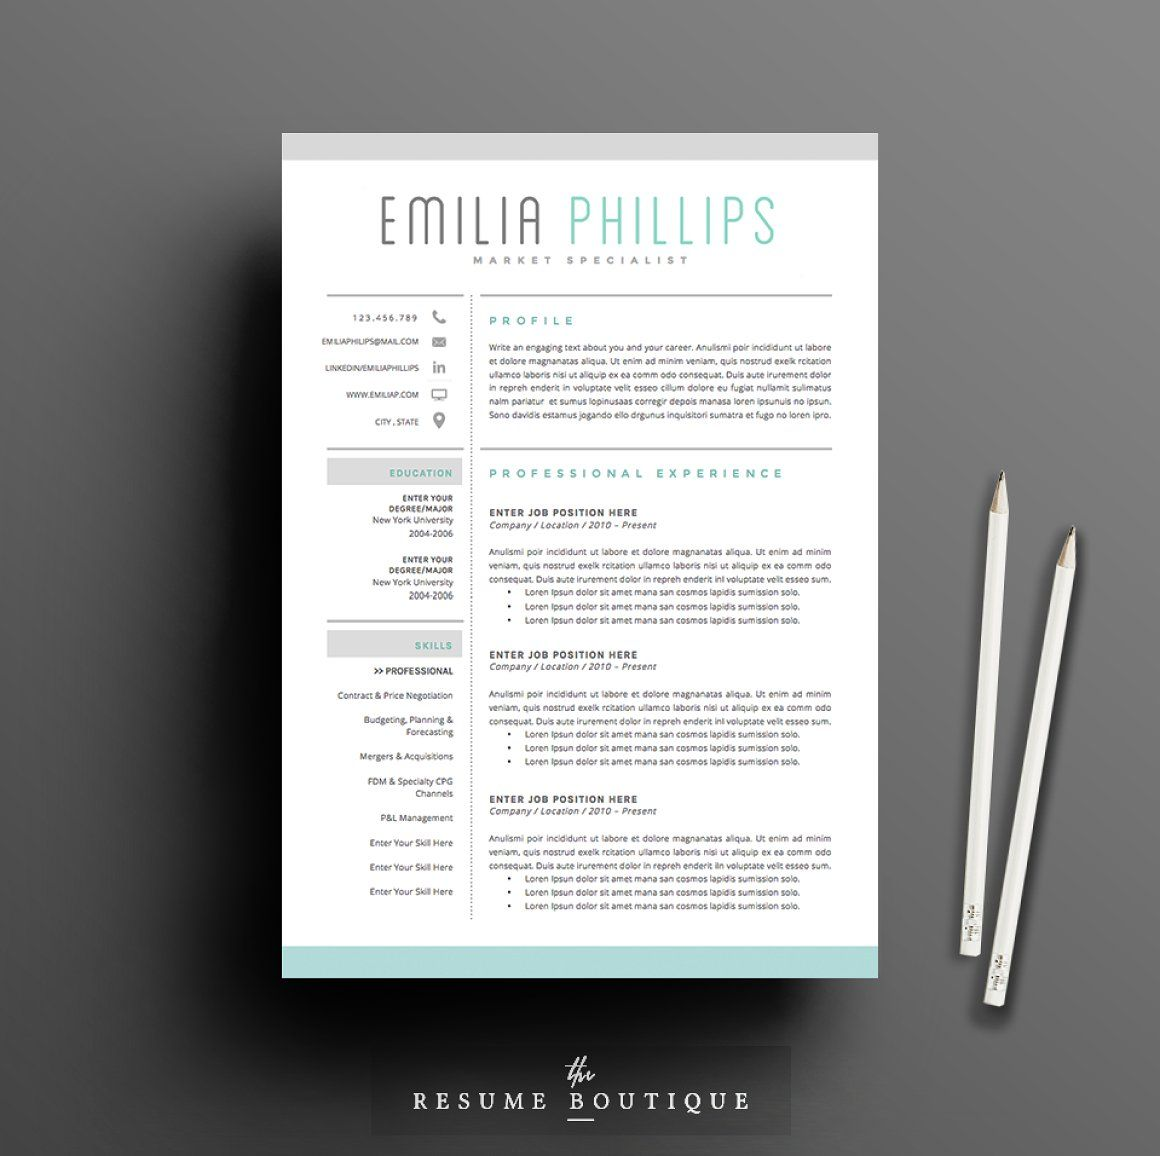 Cool Resume Templates 50 Creative Resume Templates You Won't Believe Are Microsoft Word